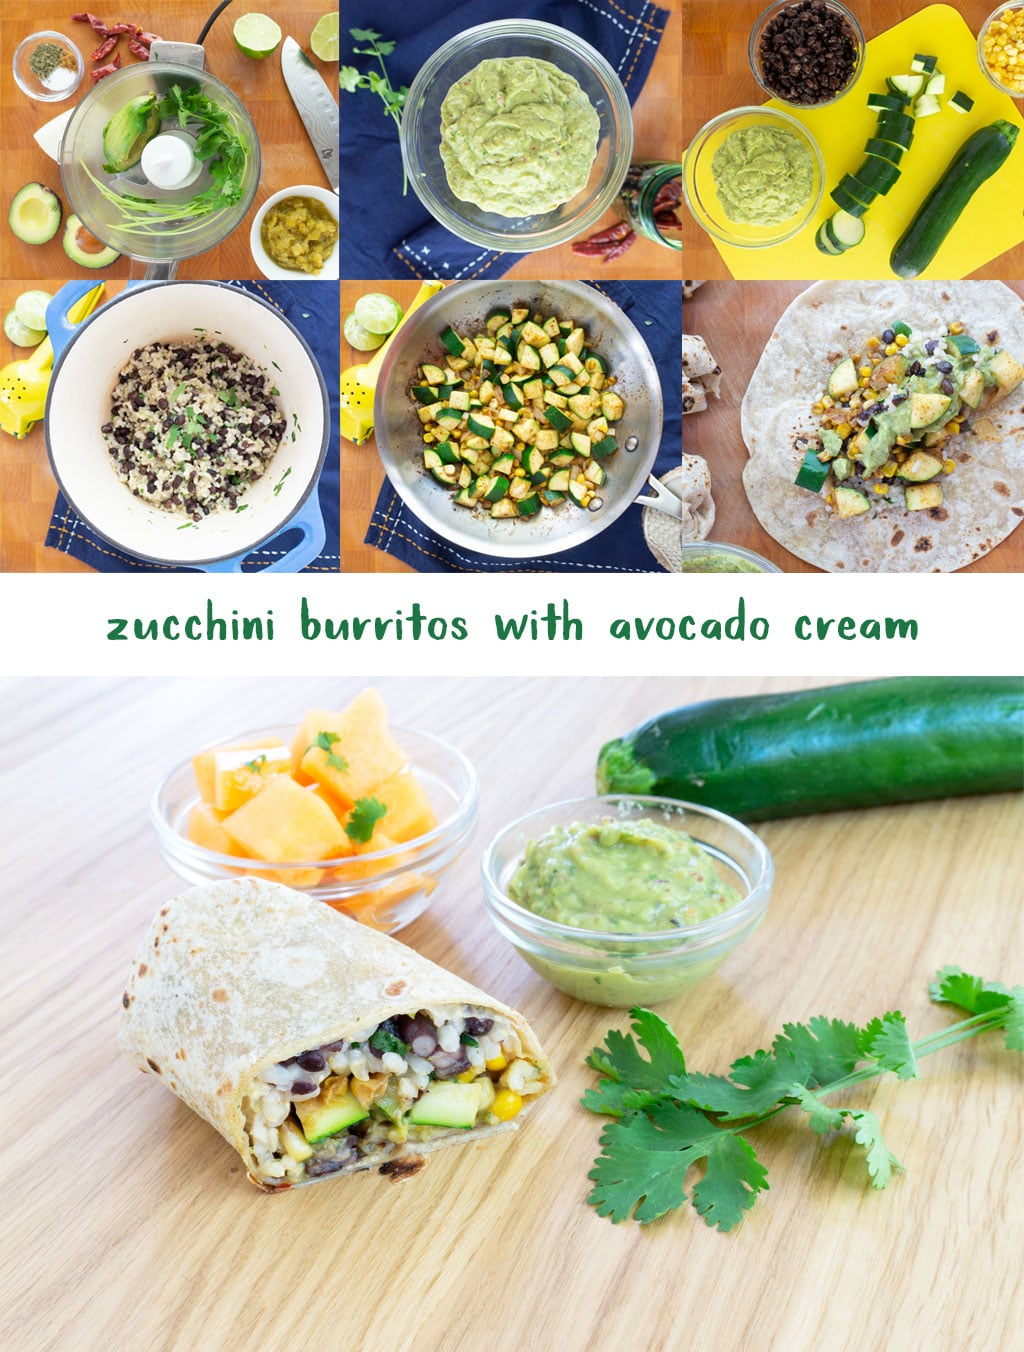 Step by Step instructions for making Zucchini Burritos